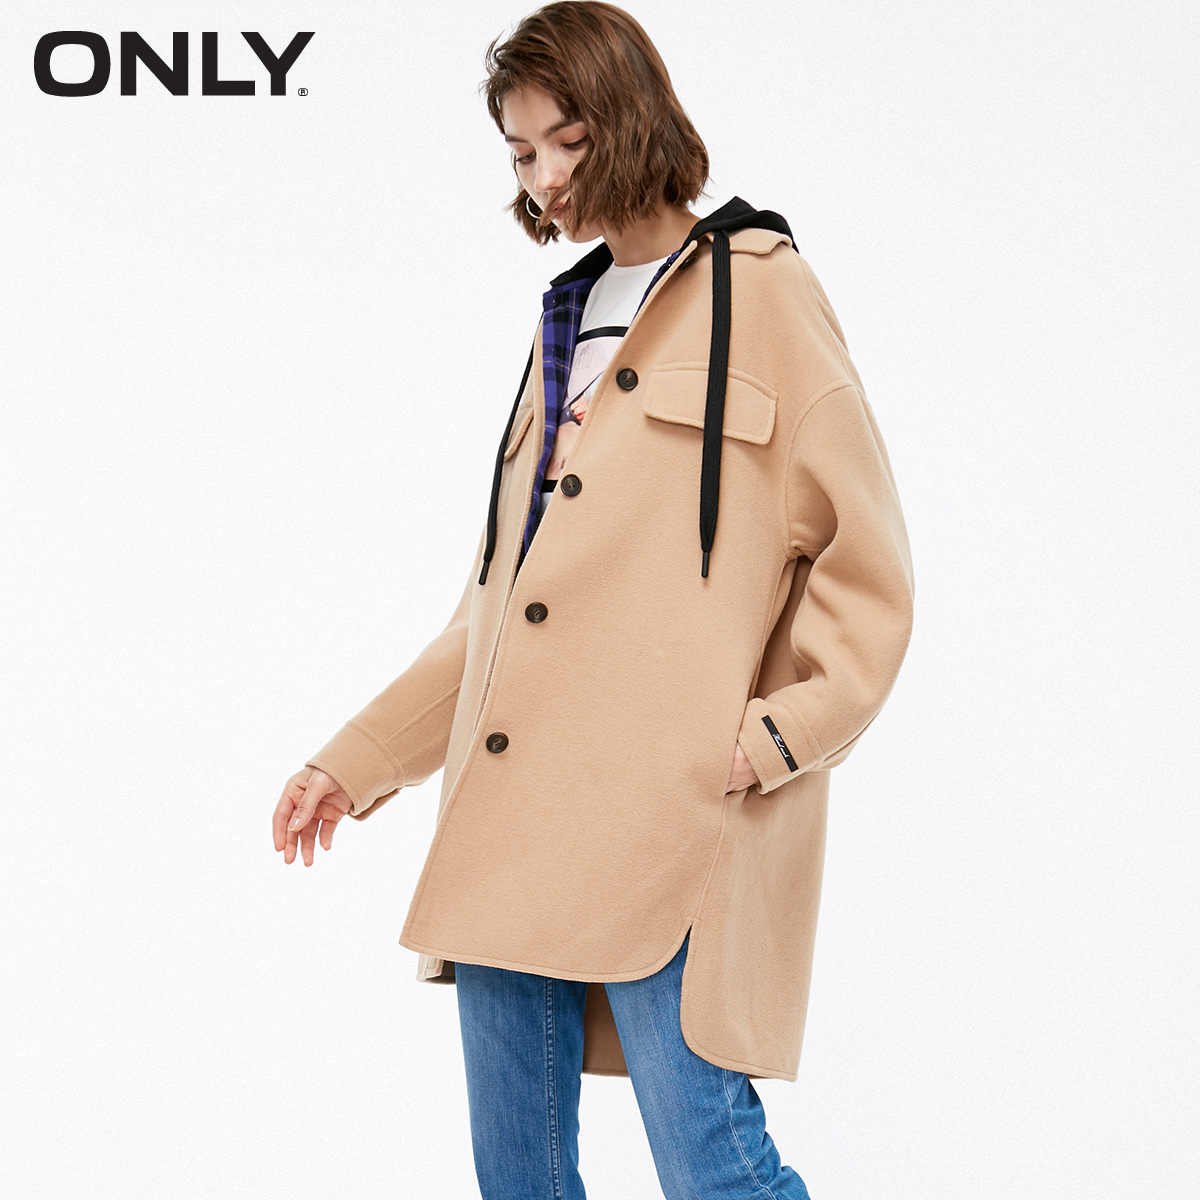 ONLY 2019 Autum Winter New Arrivals Lapel Woolen Coat | 11834S524